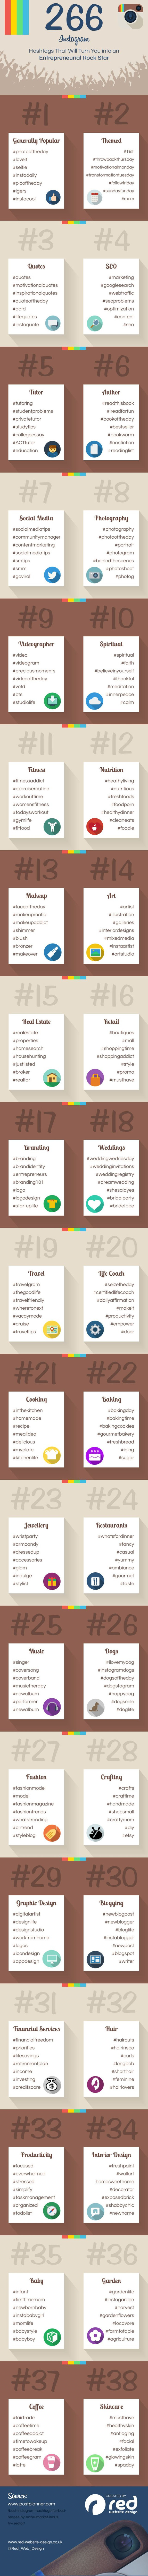 Popular hashtags for Instagram by industry